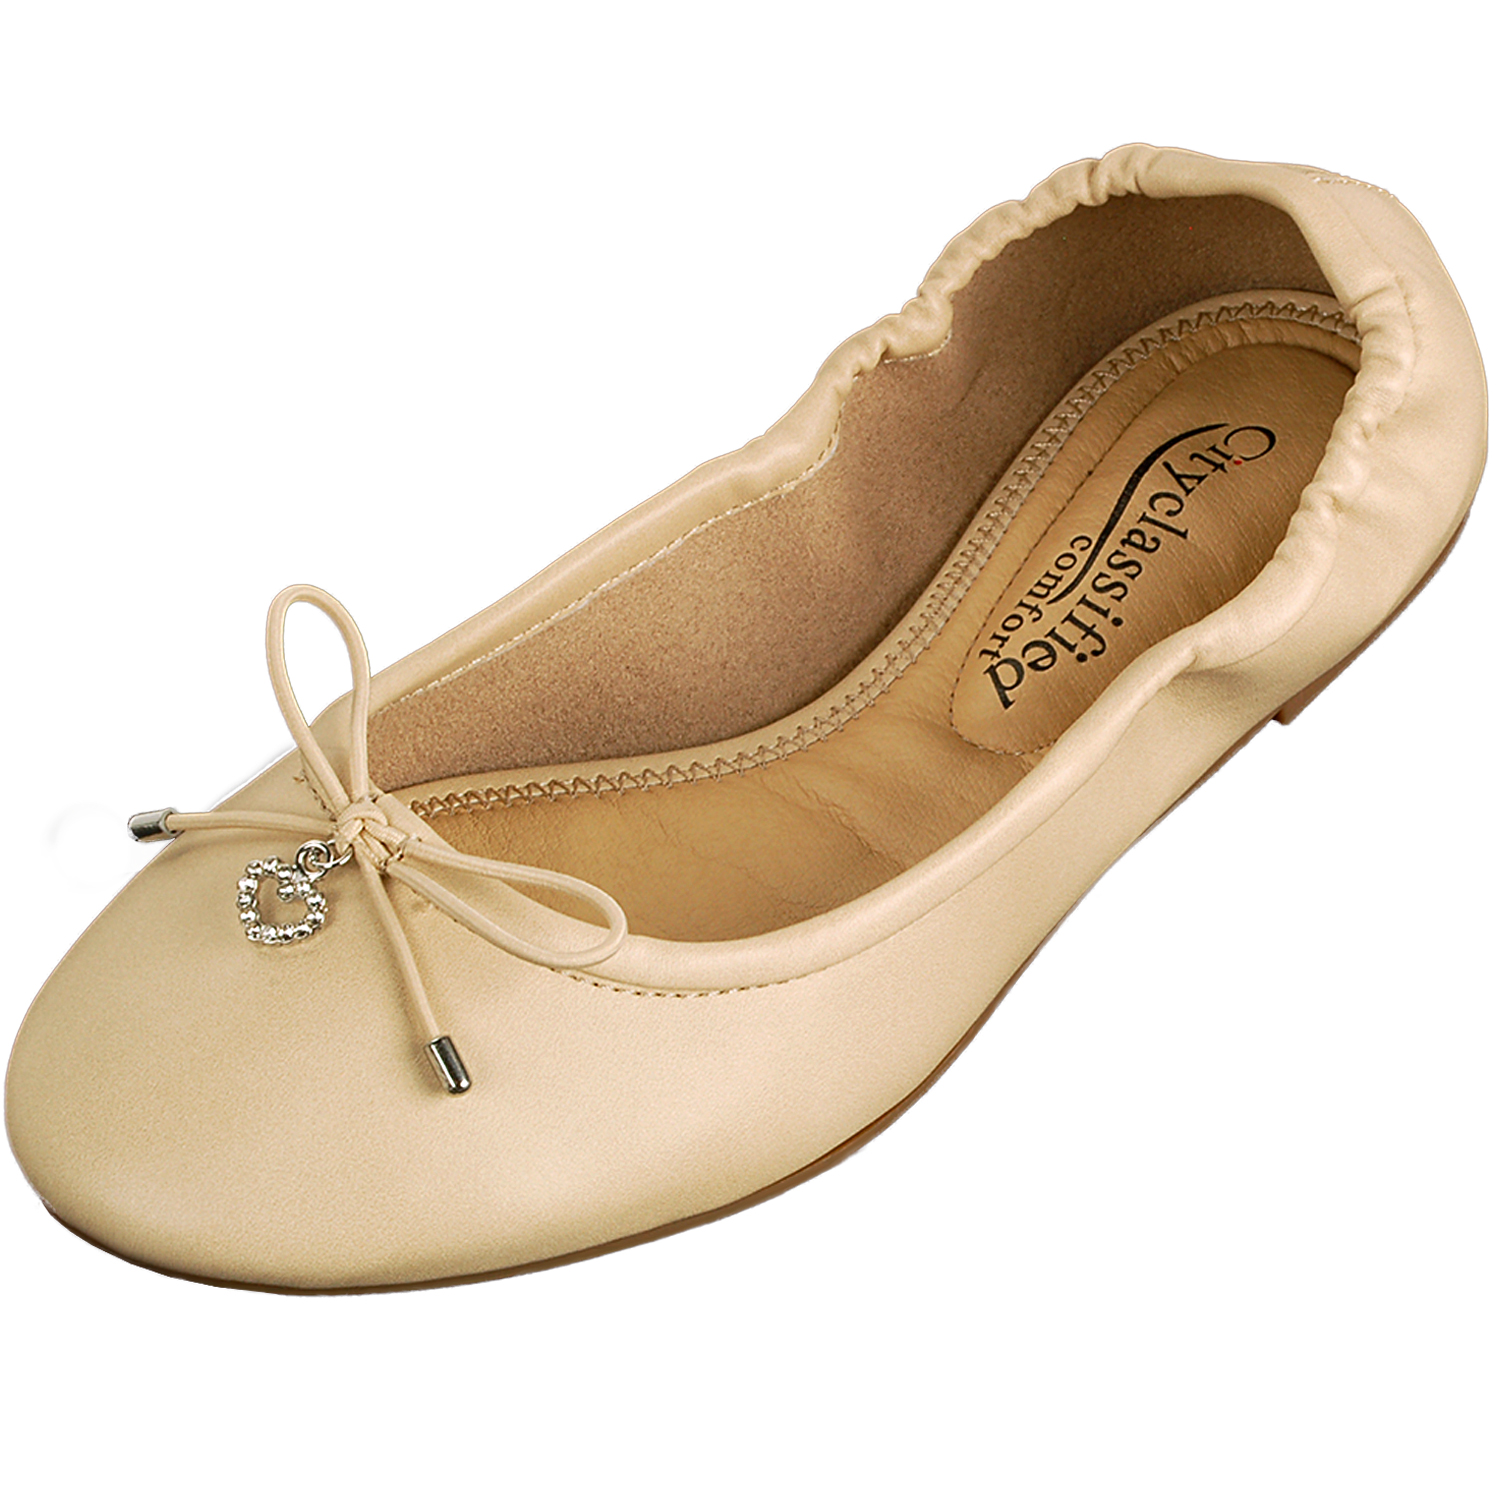 FREE SHIPPING AVAILABLE! Shop smileqbl.gq and save on Ballet Flats Women's Flats & Loafers.